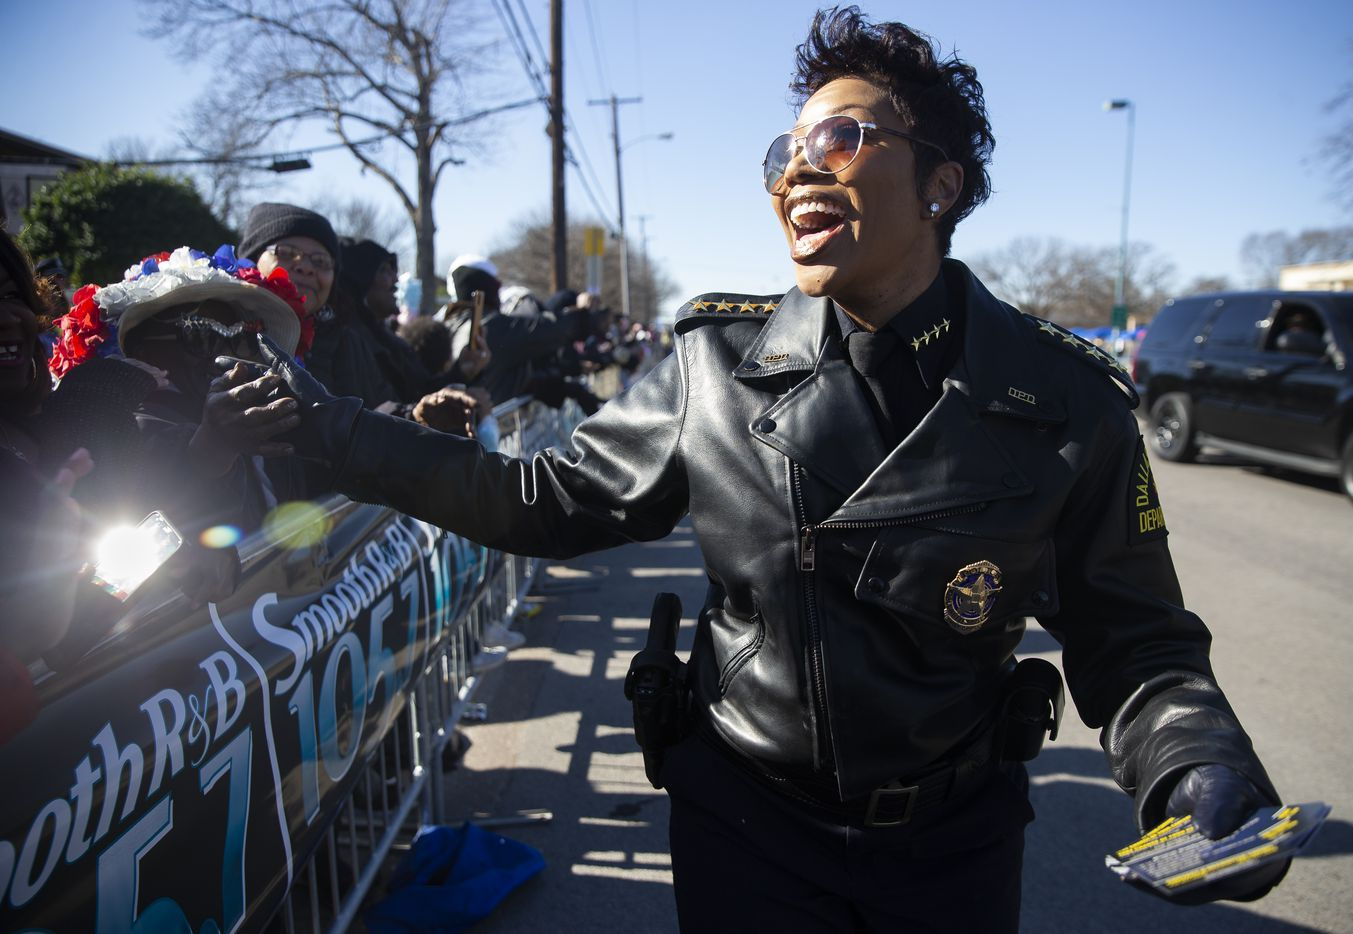 Dallas Police Chief U. Renee Hall greets people as she makes her way down Martin Luther King Jr. Blvd during the 38th annual MLK Parade on Jan. 20, 2020 in Dallas. (Juan Figueroa/ The Dallas Morning News)